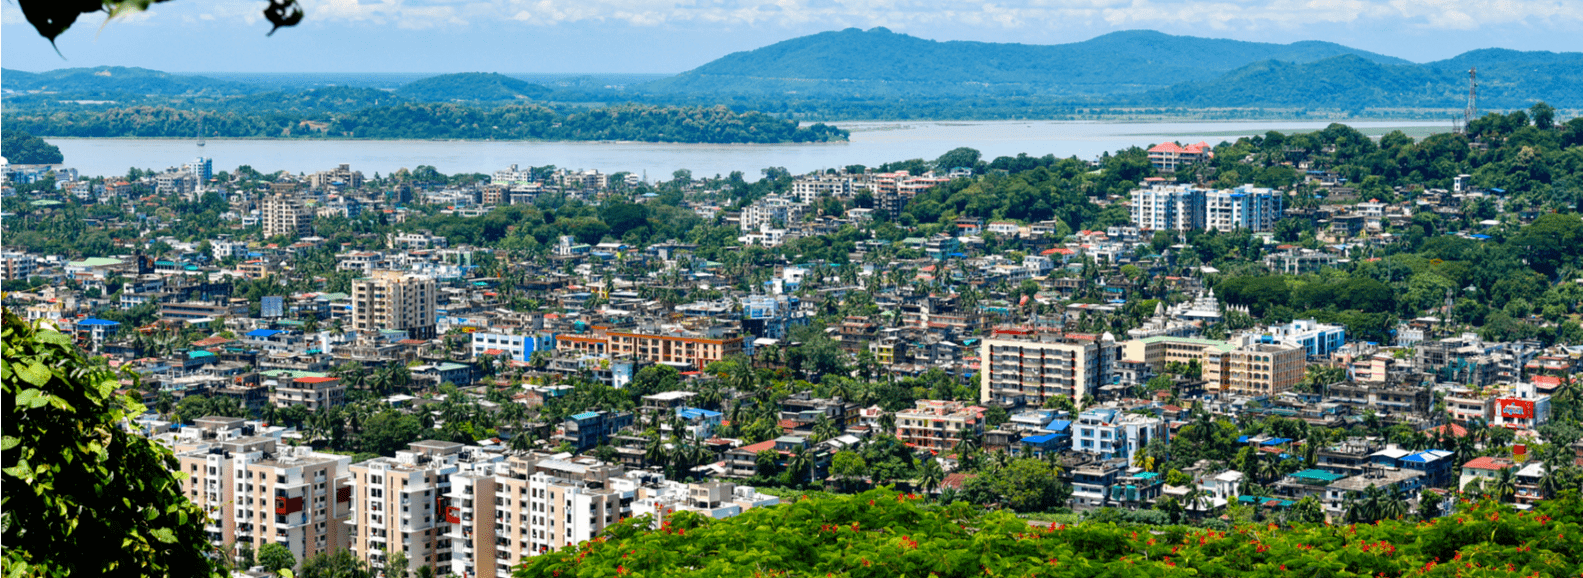 Landscape view of Guwahati city from height shows the beauty of the city